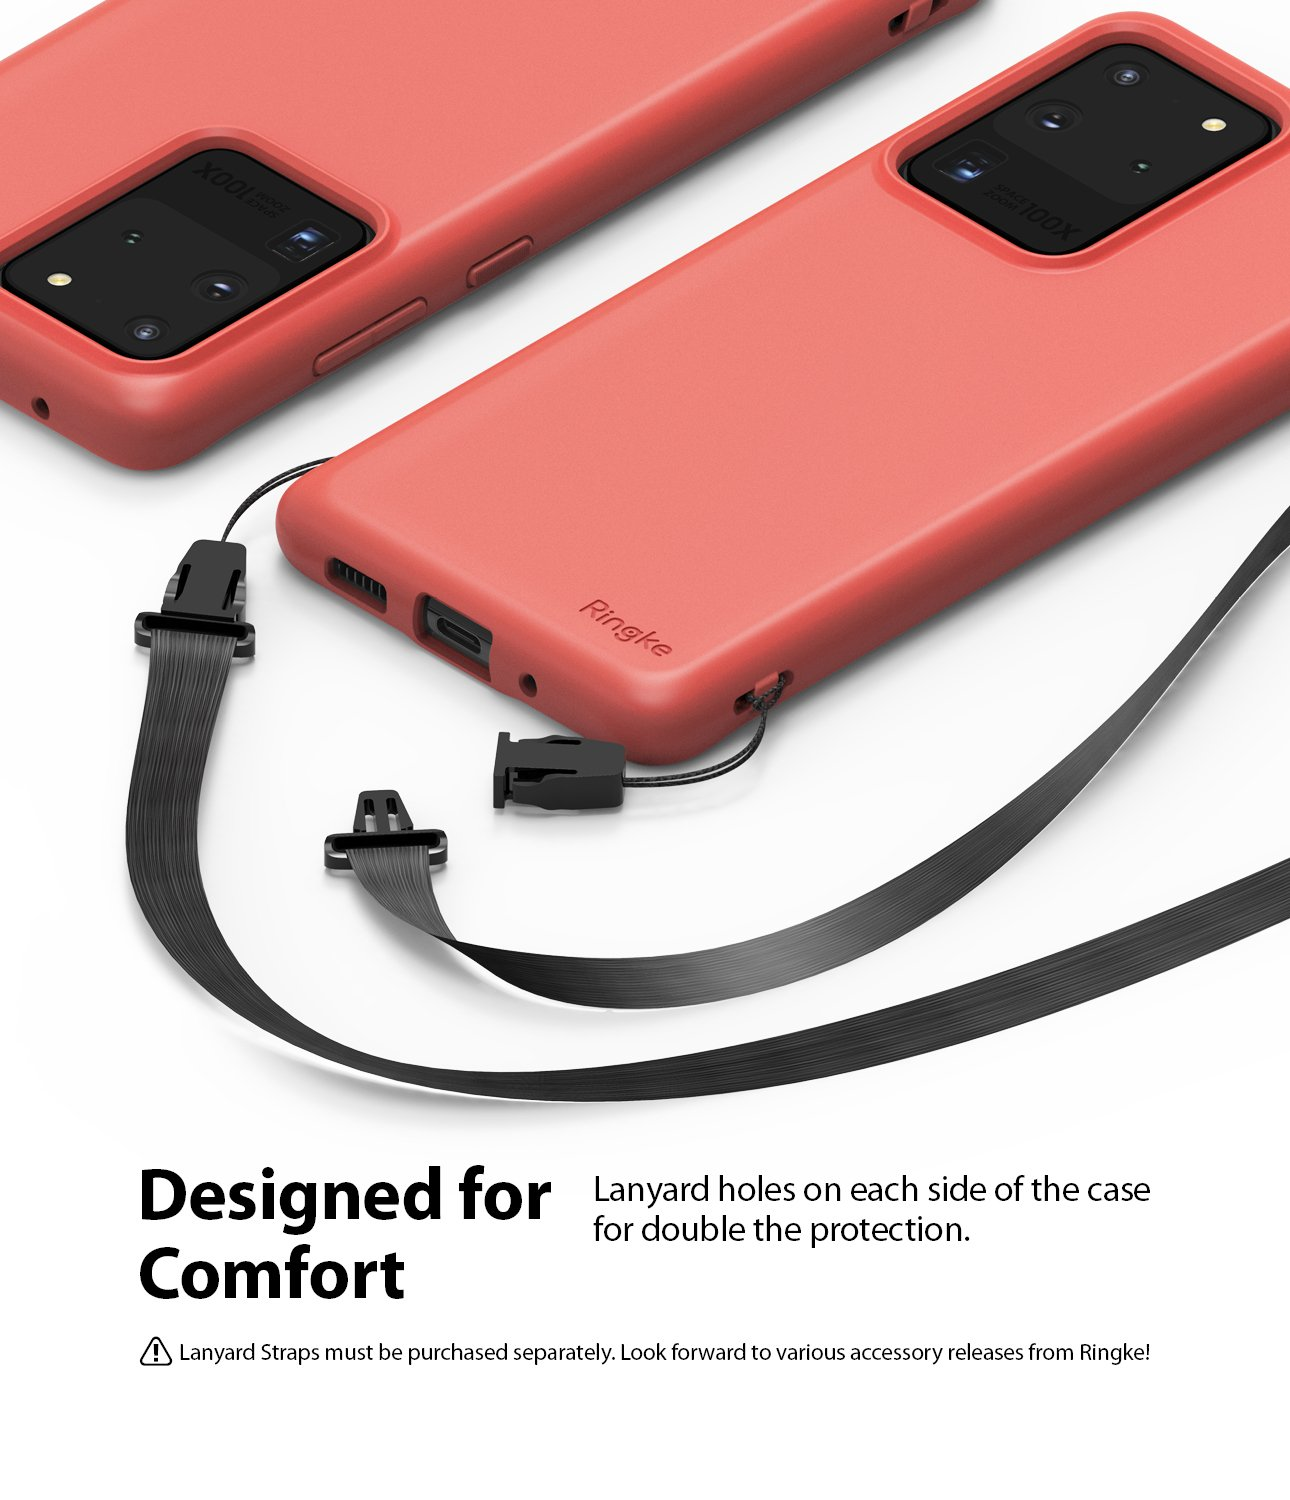 Galaxy S20 Ultra Case ringke Air-S, lanyard holes, designed for comfort